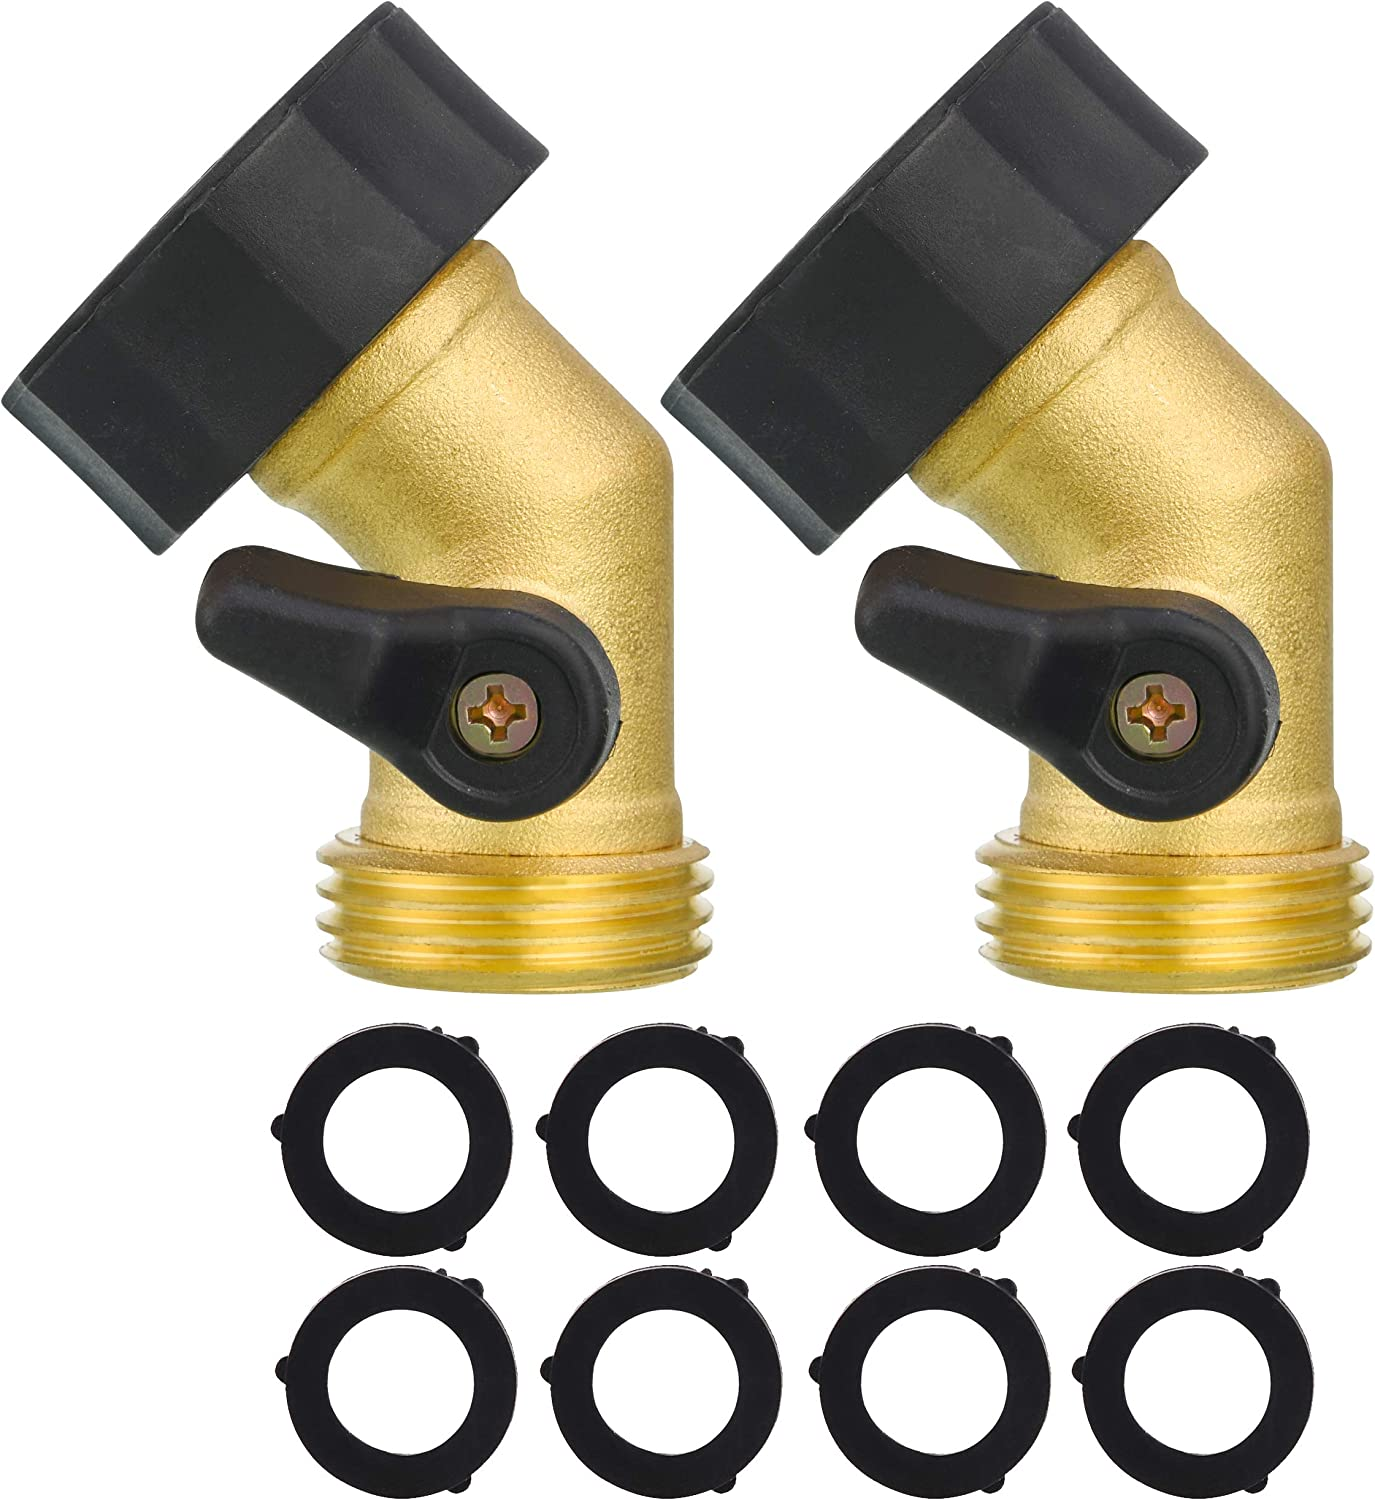 M MINGLE Garden Hose Elbow Connector, Hose Shut Off Valve Gooseneck, 45 Degree, 3/4 Inch, 2 Pack with Extra 8 Washers